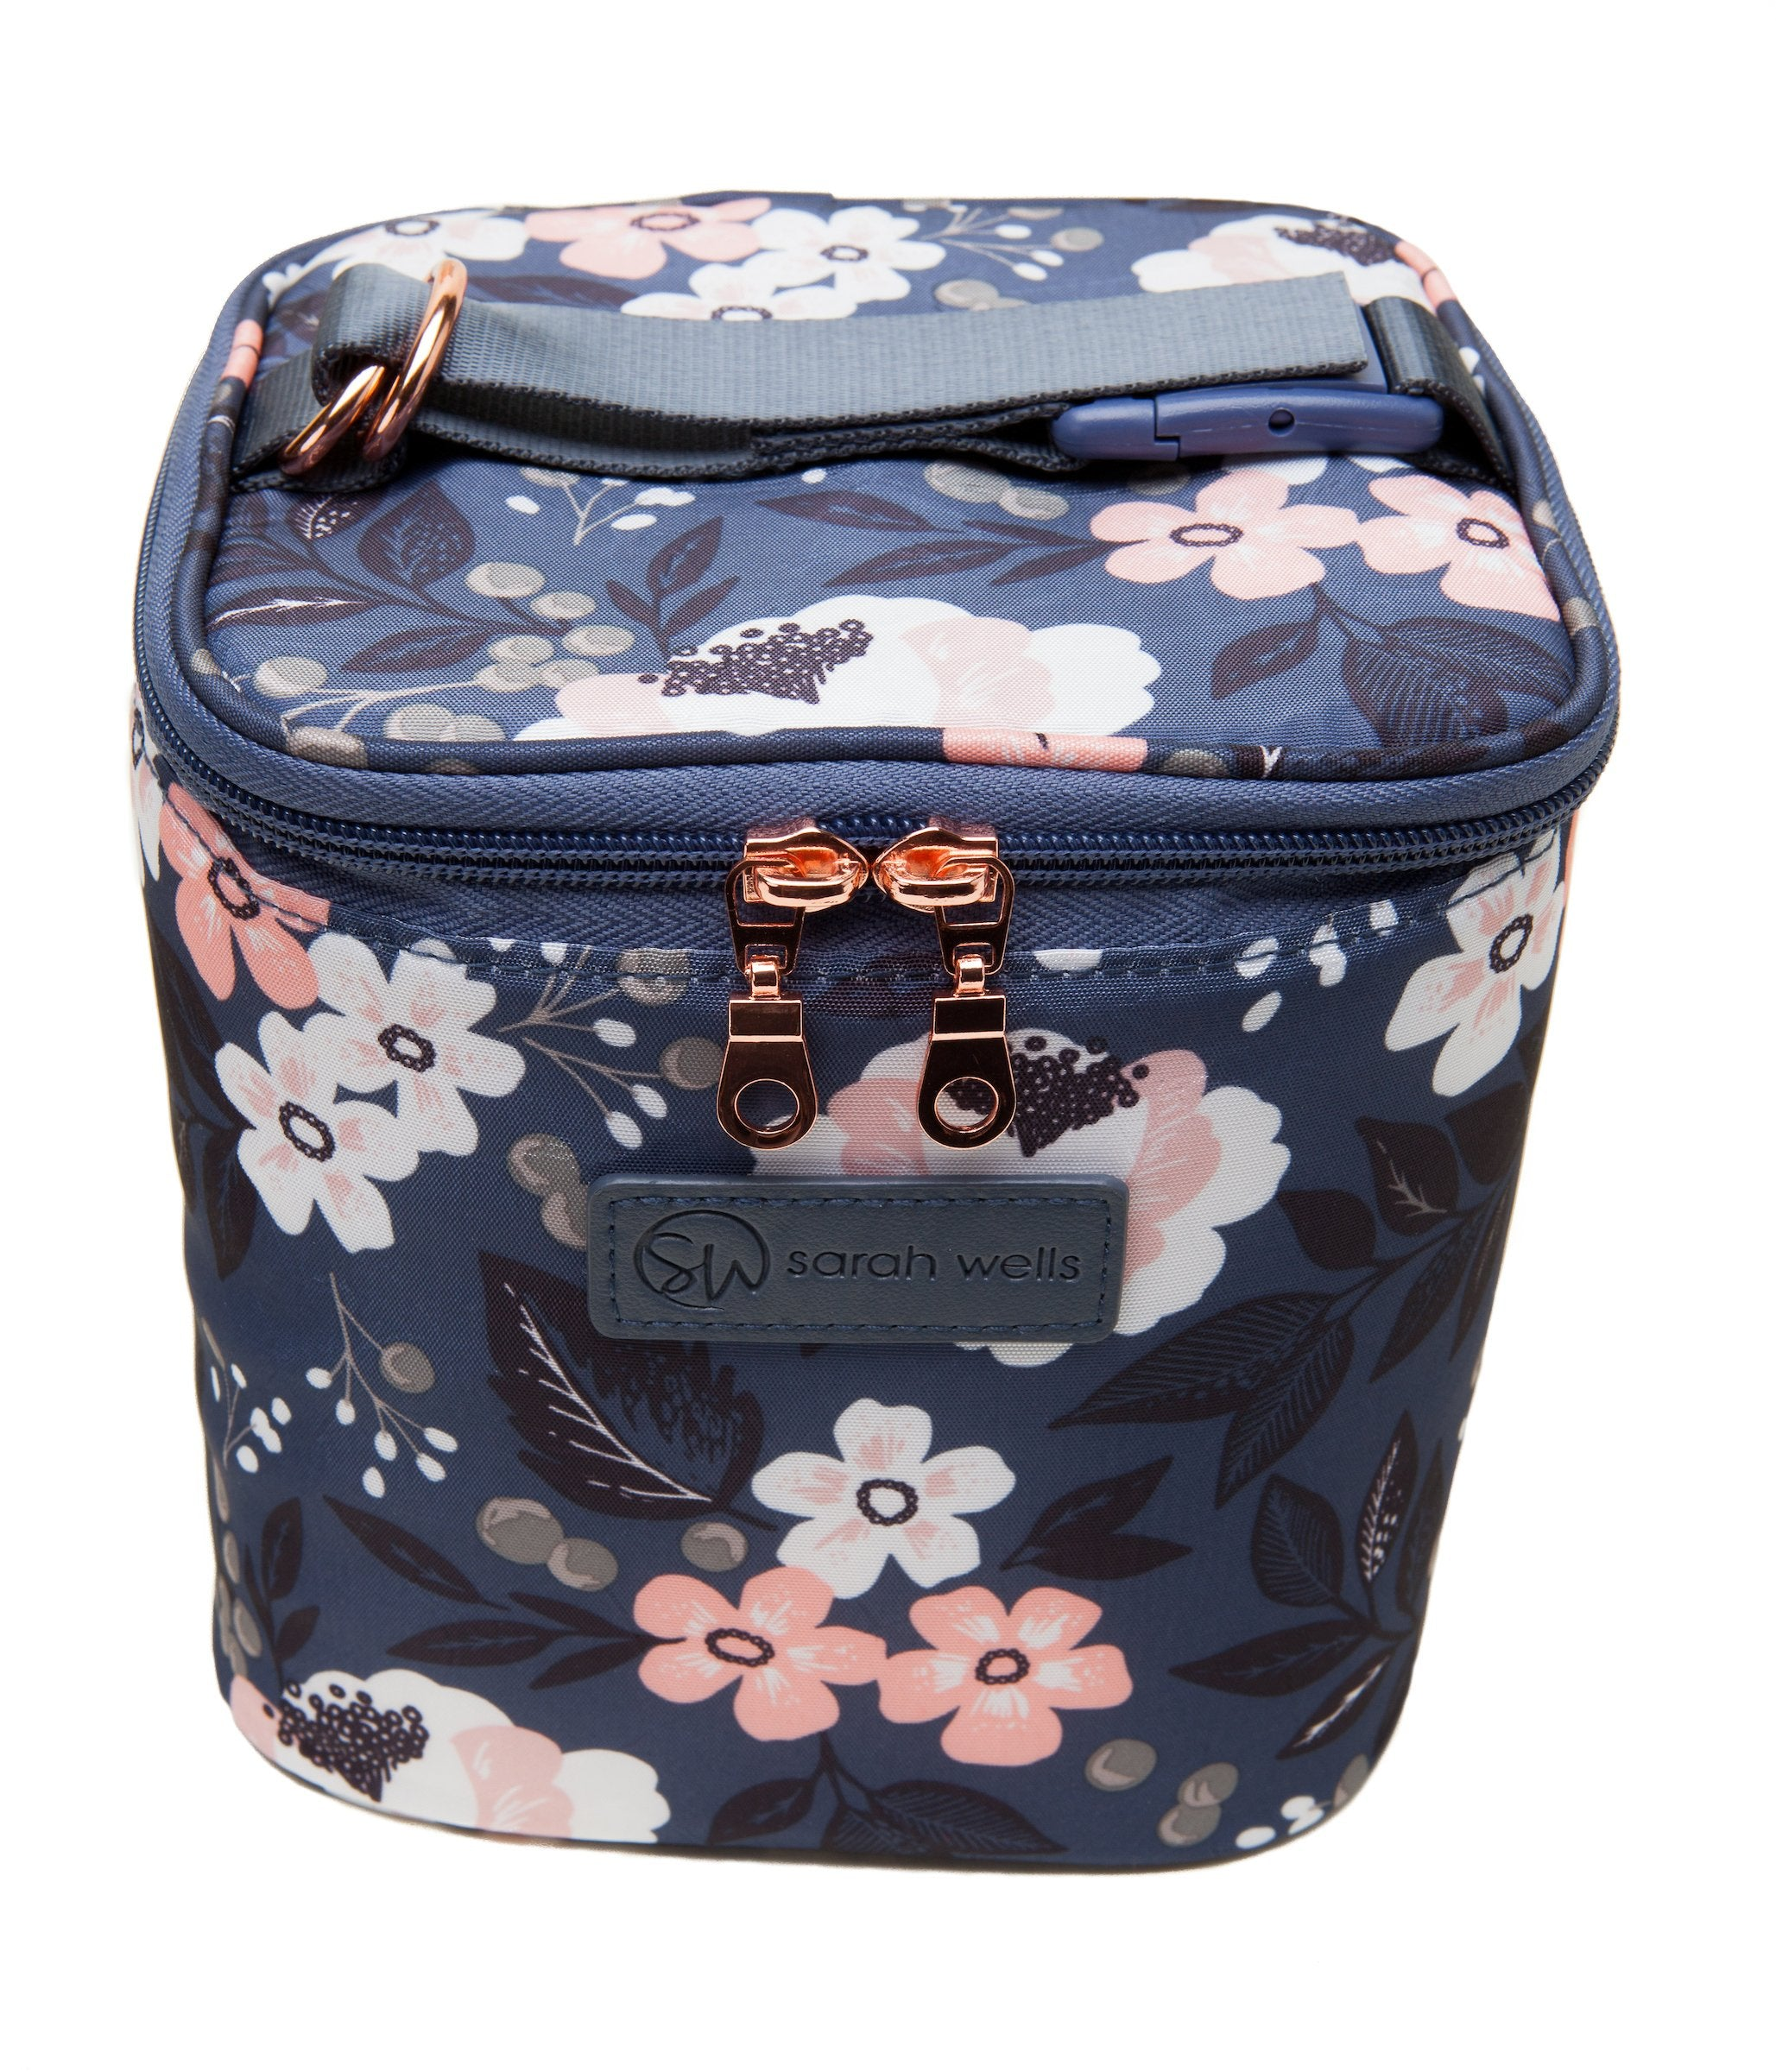 Sarah Wells Cold Gold Cooler Bag + Ice Block (Le Floral)